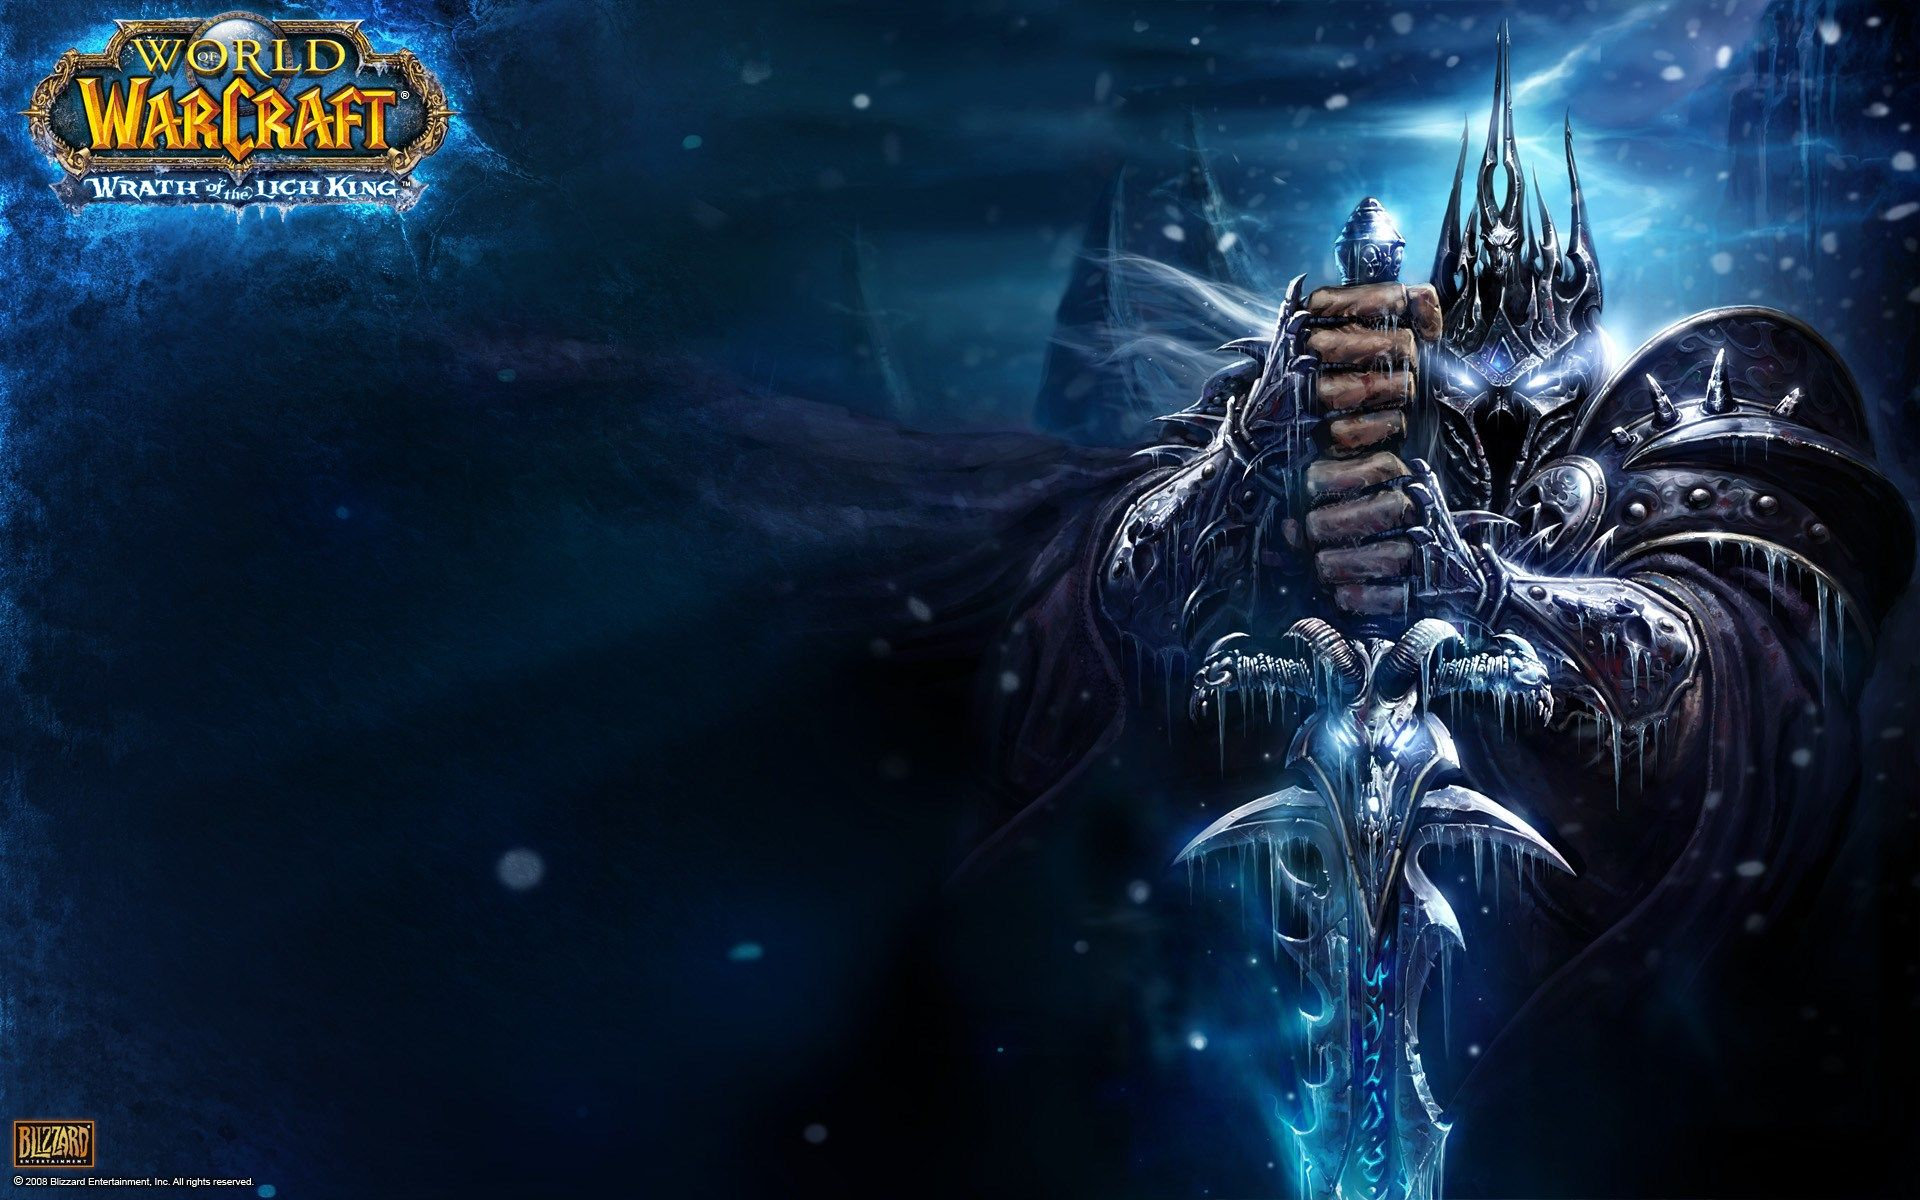 1920x1200 World of Warcraft Wrath of the Lich King game